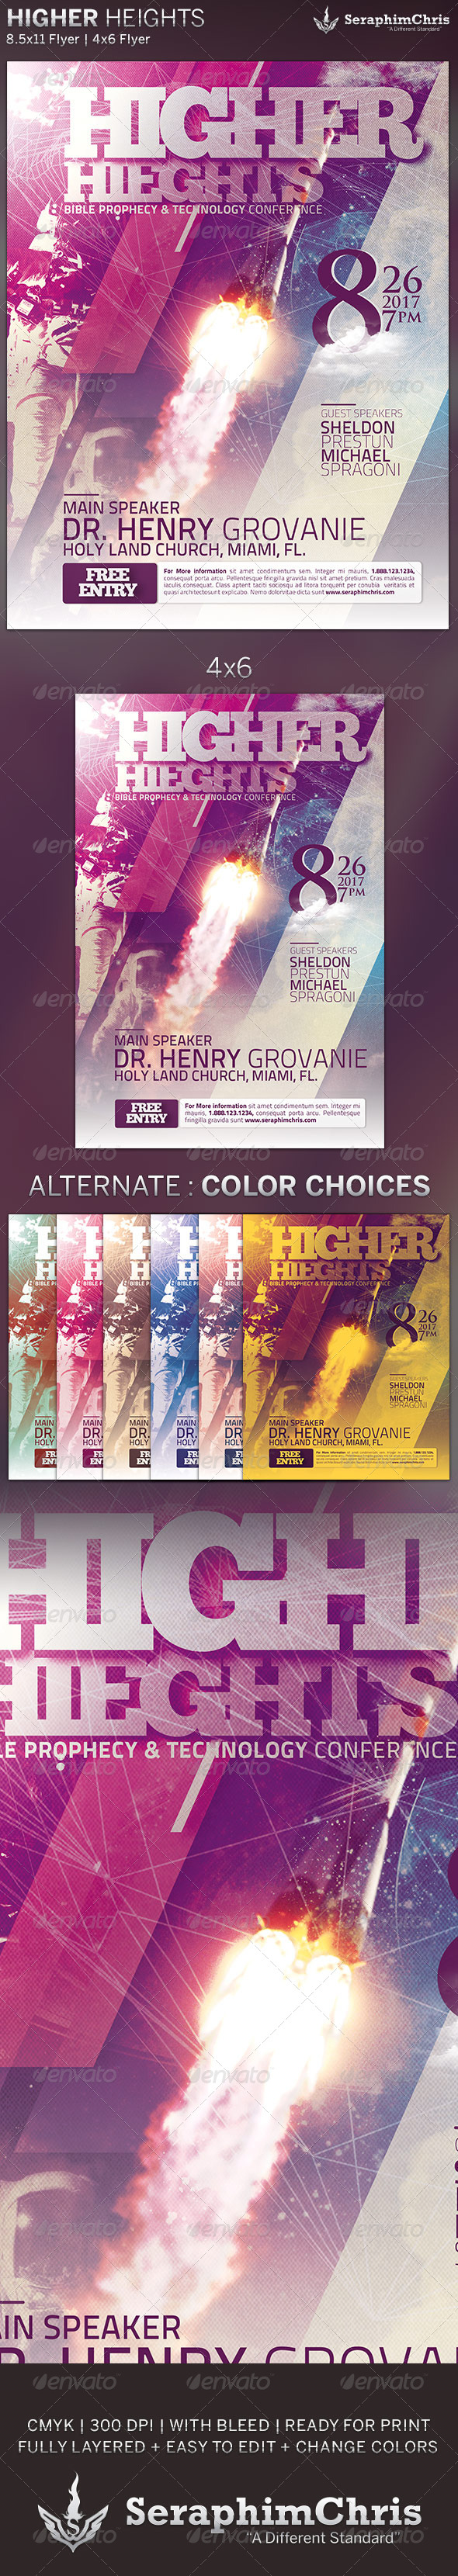 GraphicRiver Higher Heights Church Conference Flyer Template 5071153